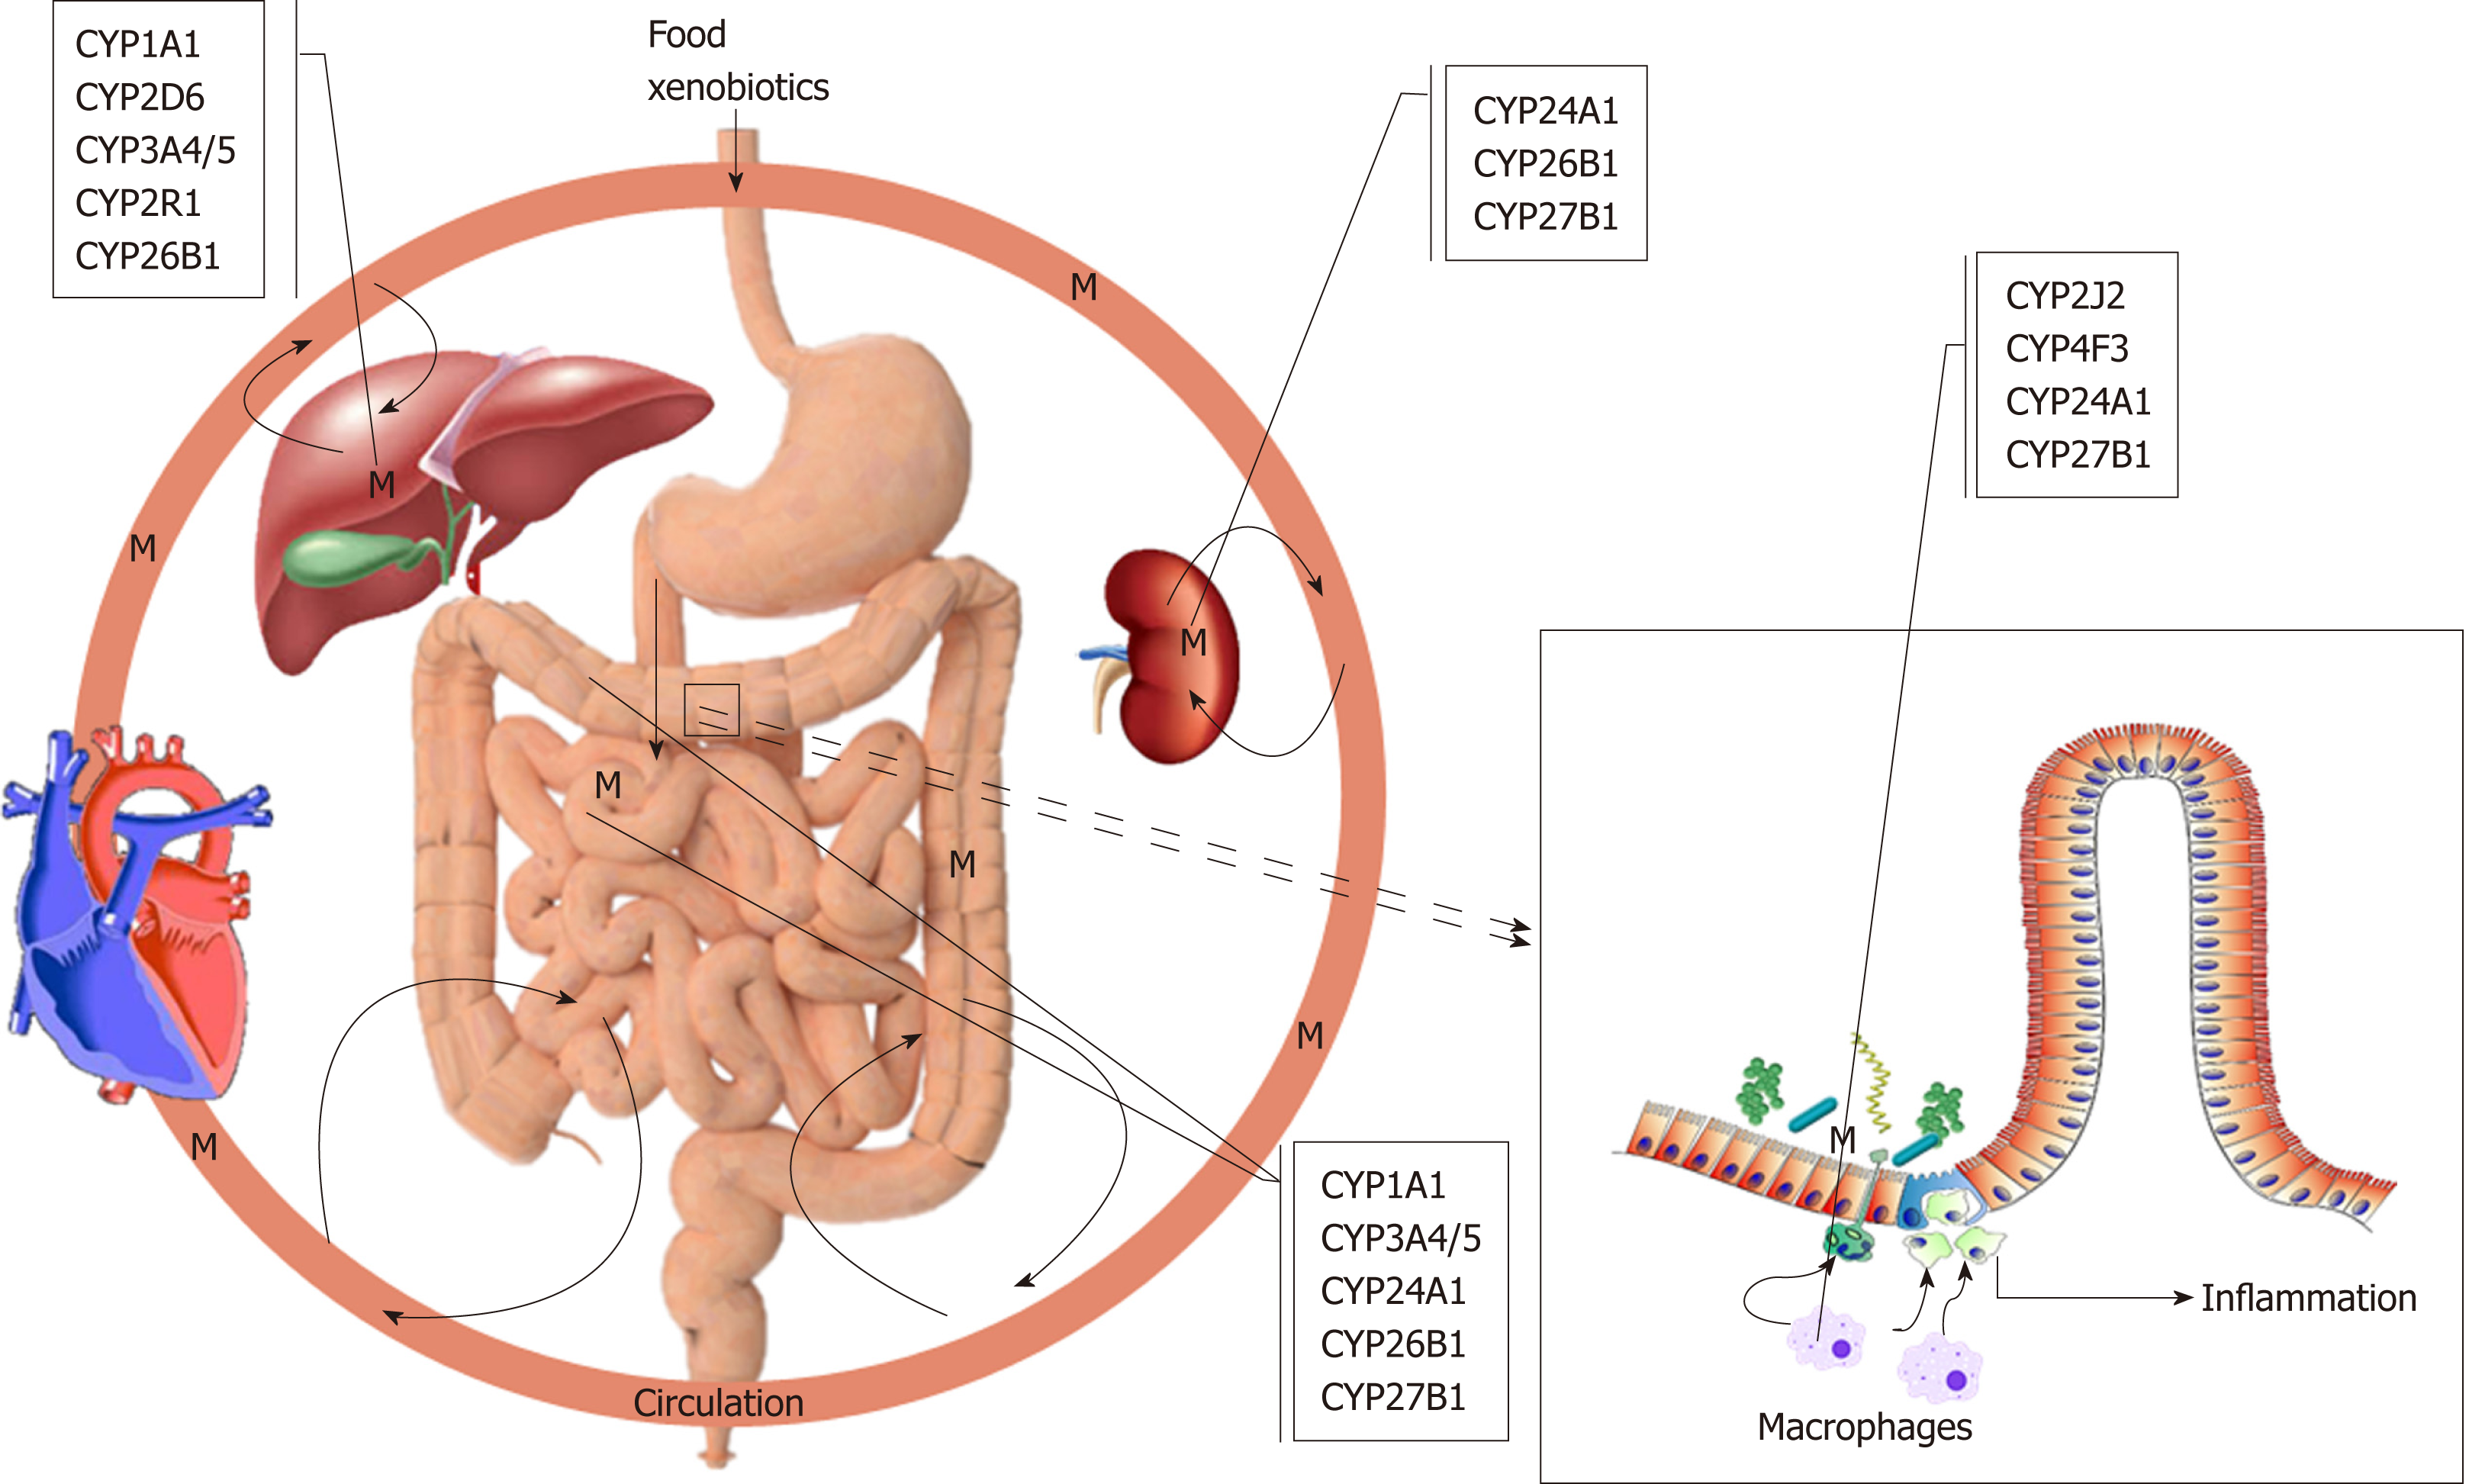 Role of cytochrome P450 polymorphisms and functions in